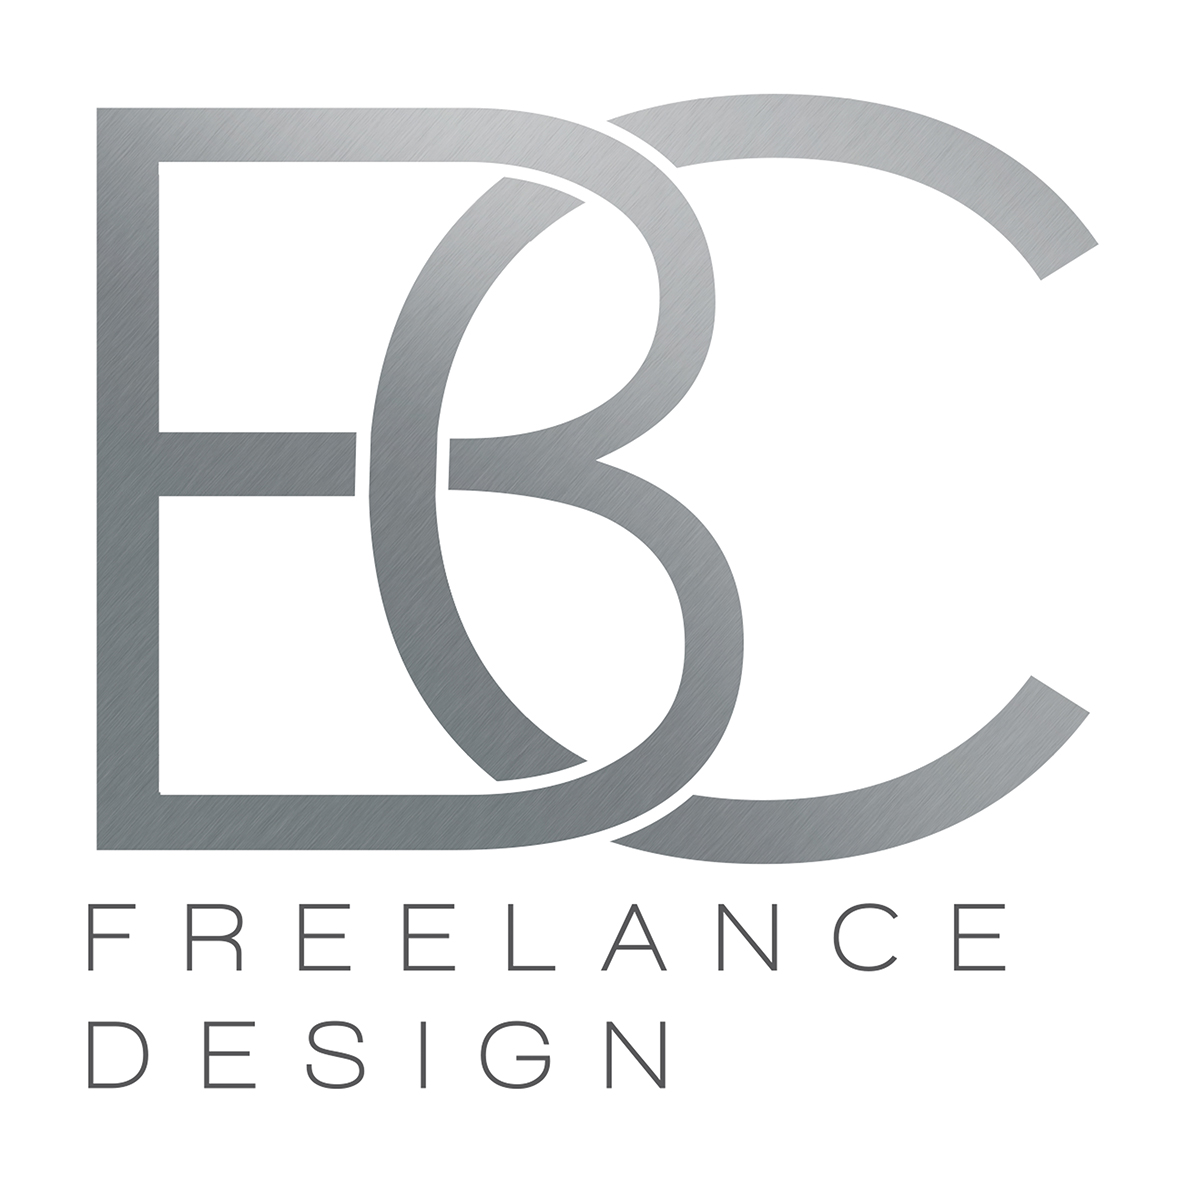 BC freelance design - Byron Bay Accommodations